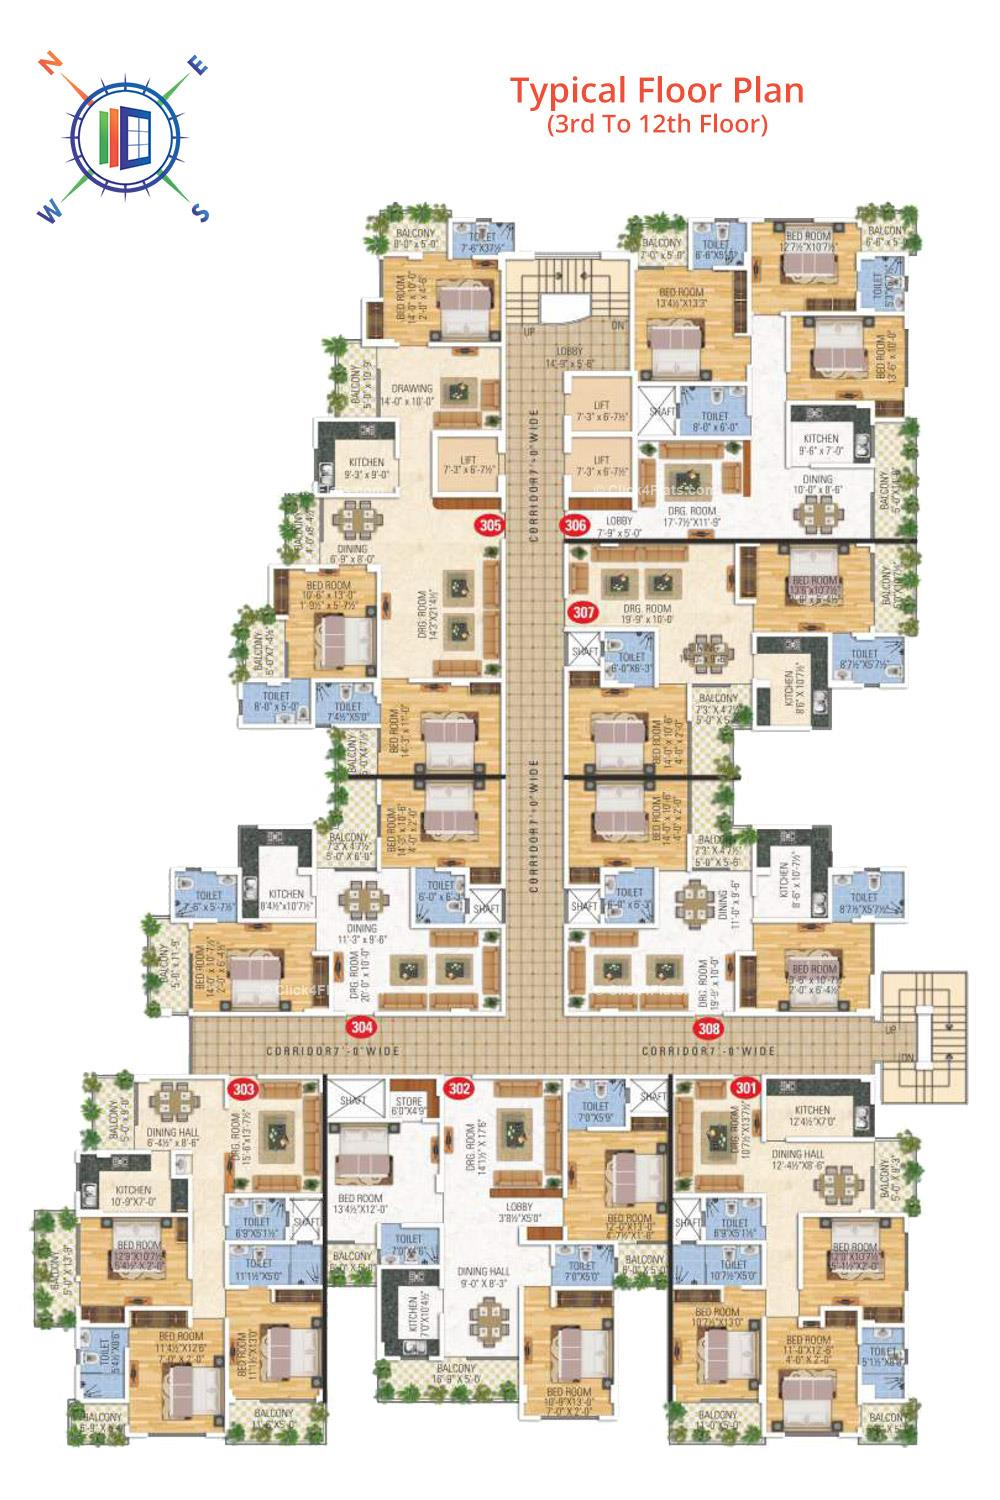 Anand Prime Typical Floor Plan